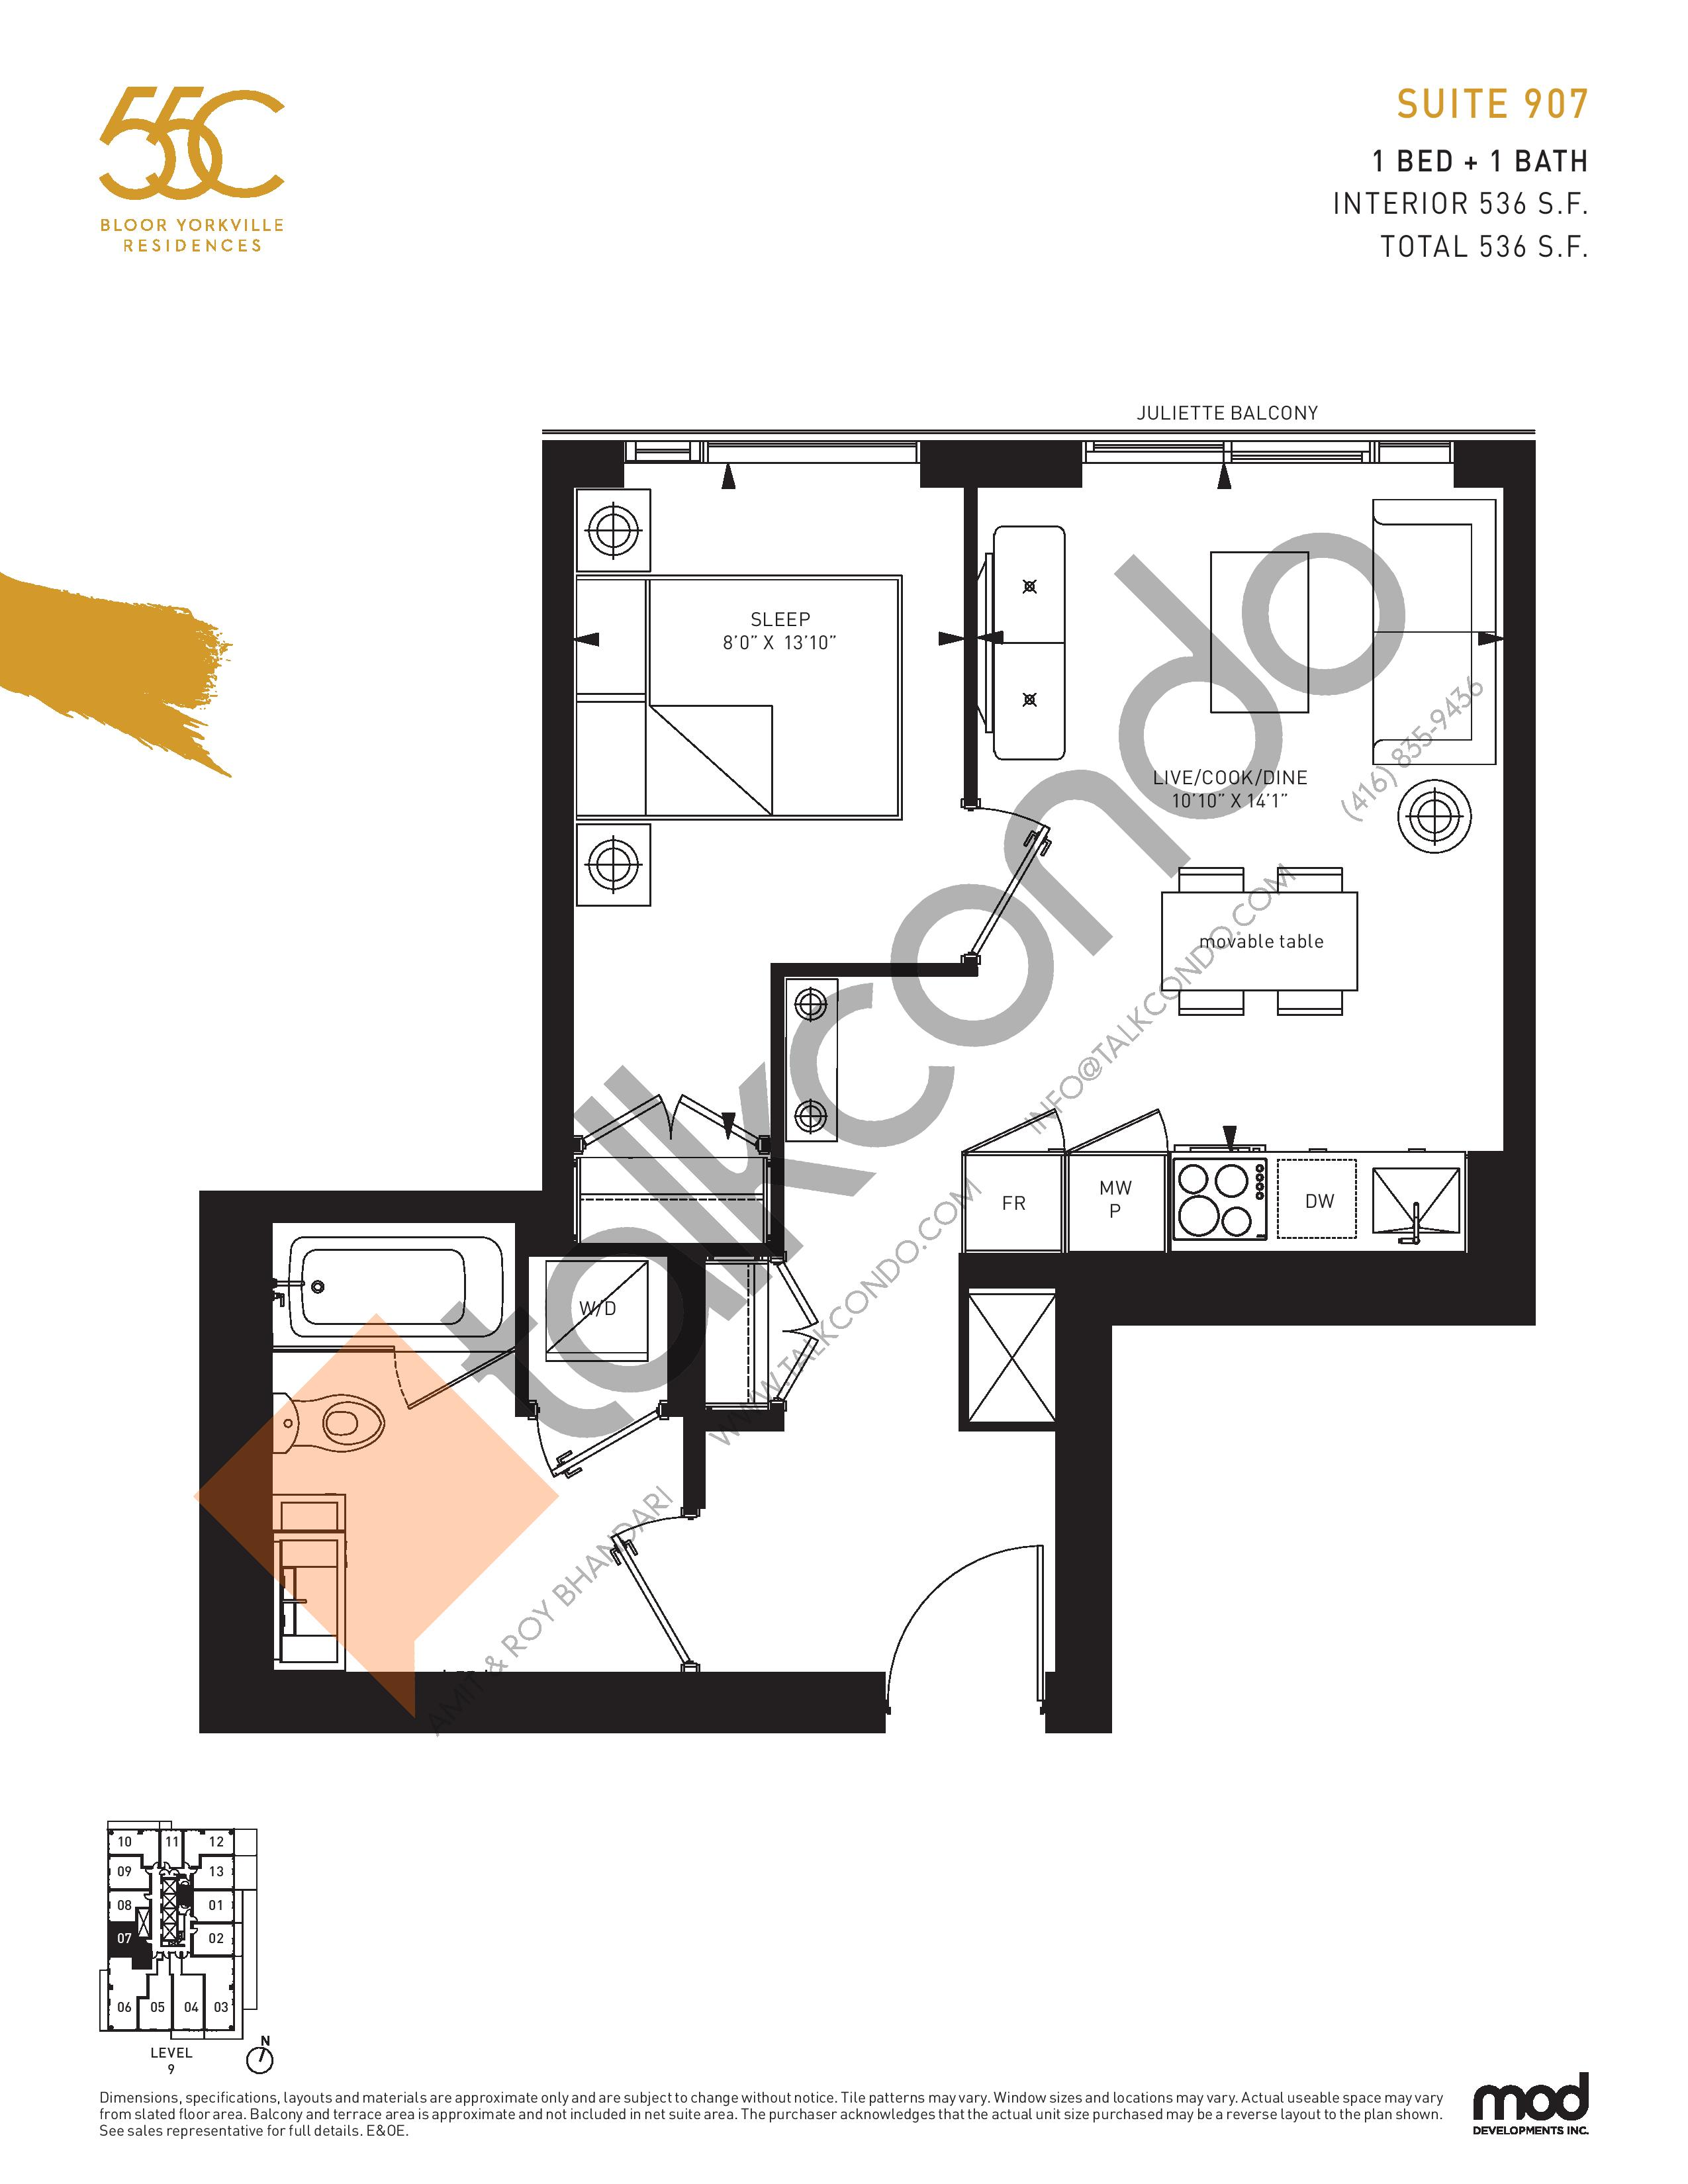 Suite 907 Floor Plan at 55C Condos - 536 sq.ft